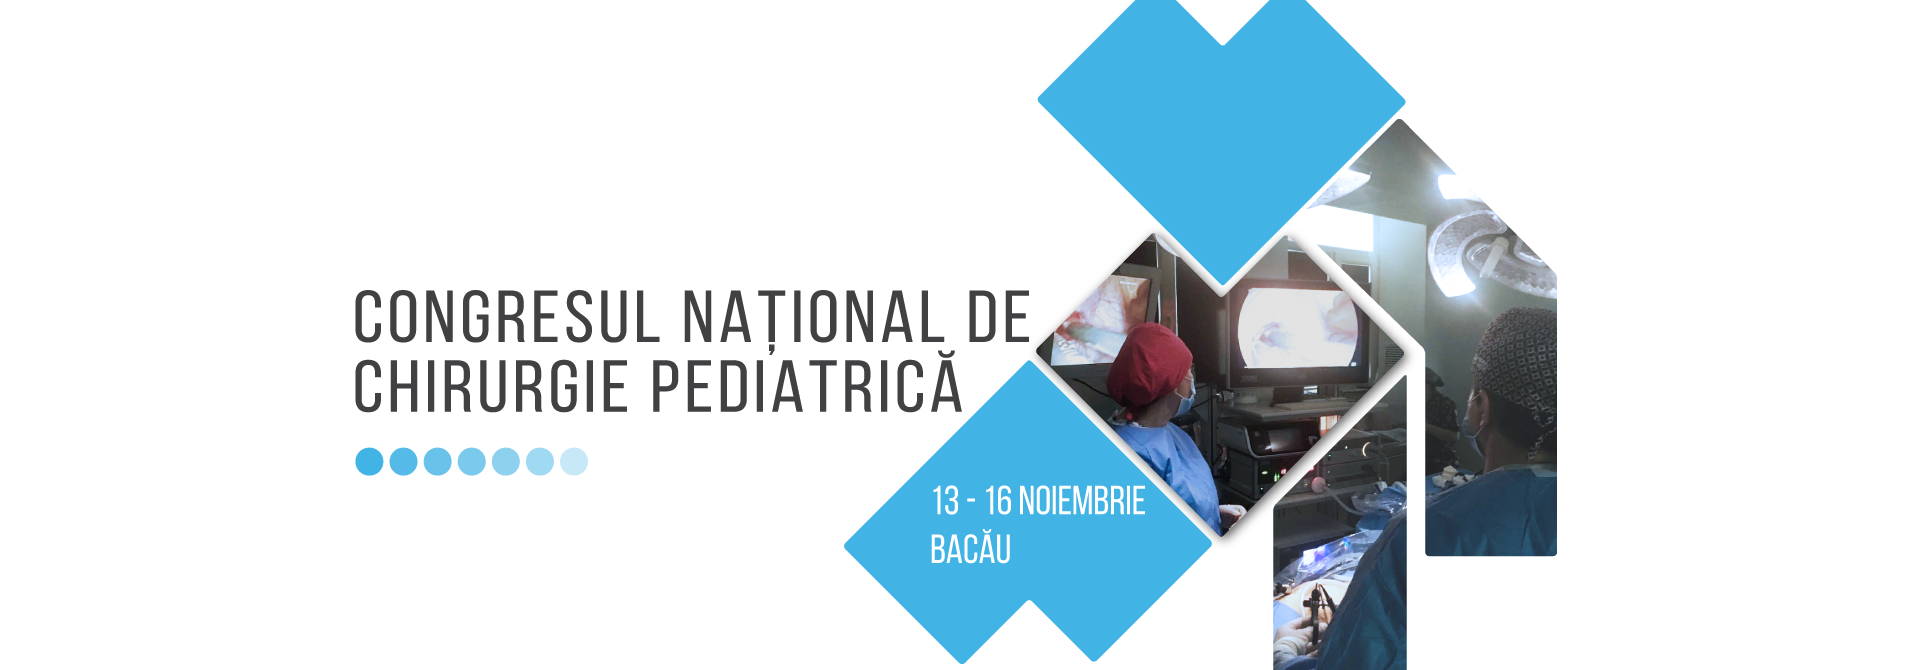 Congresul National de Chirurgie Pediatrica